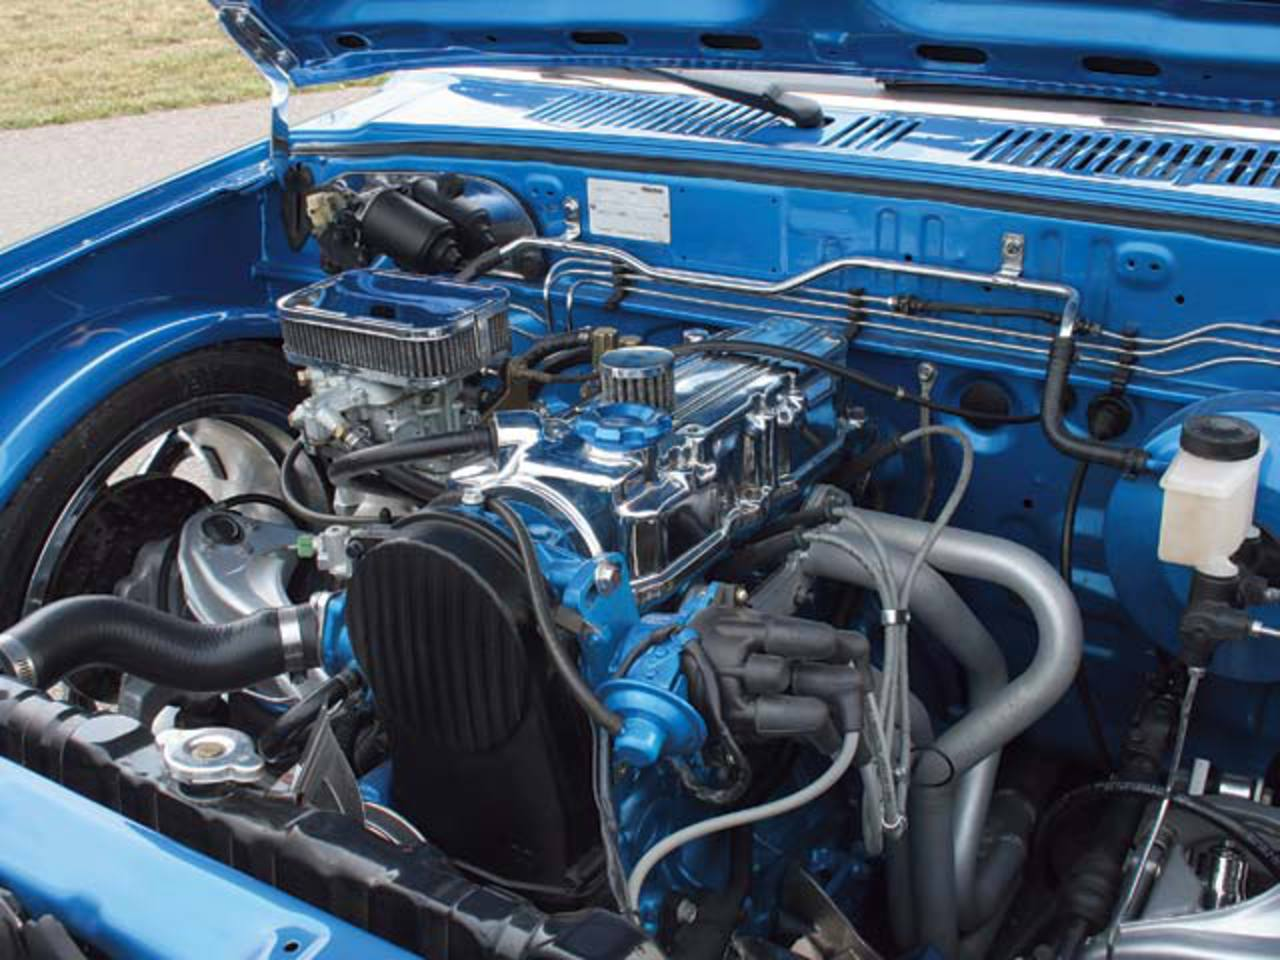 1988 Mazda B2200 Engine Compartment